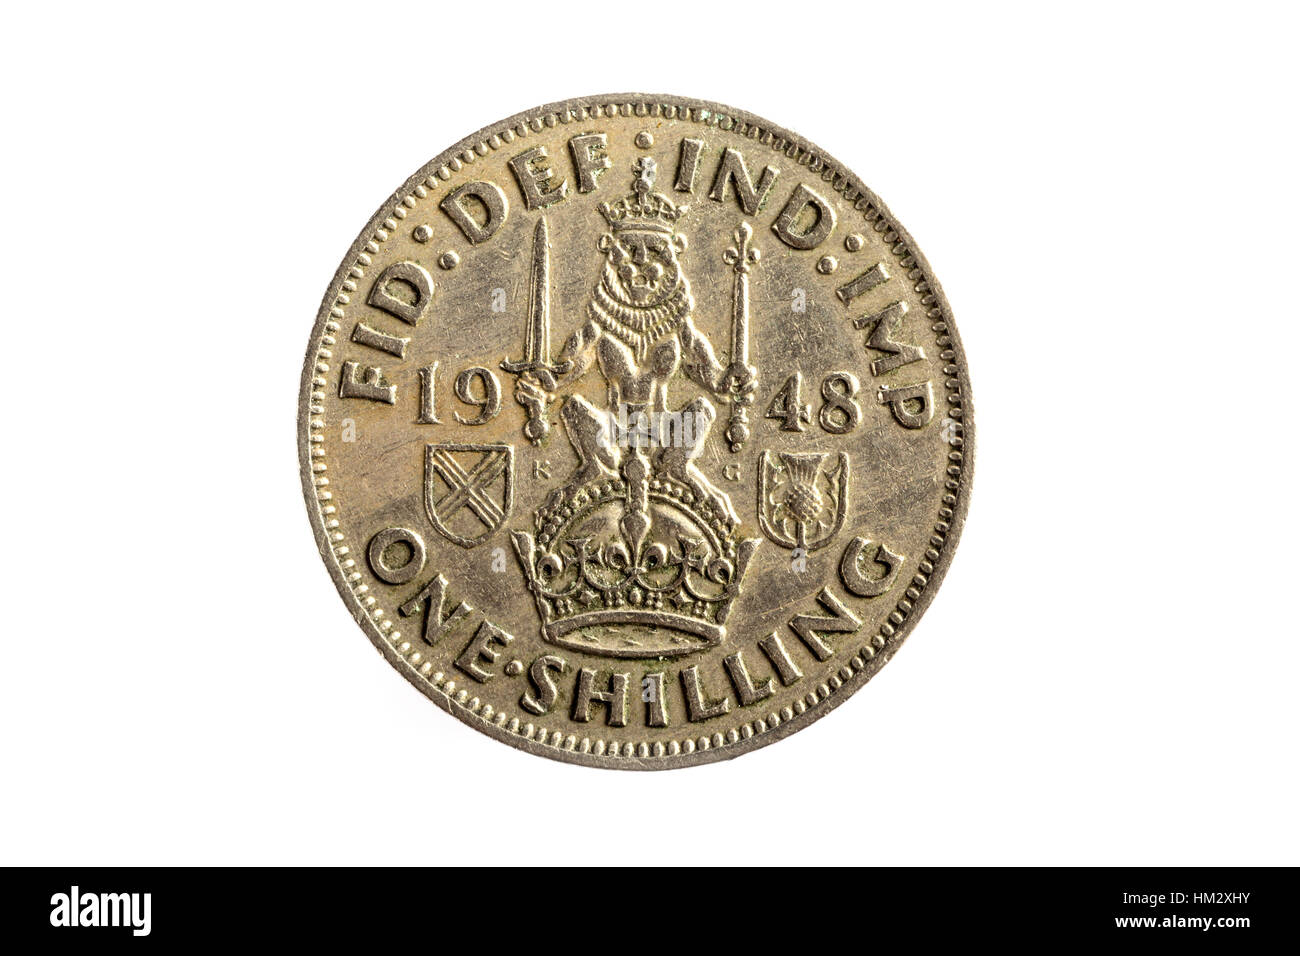 A one Shilling imperial British Coin - Stock Image